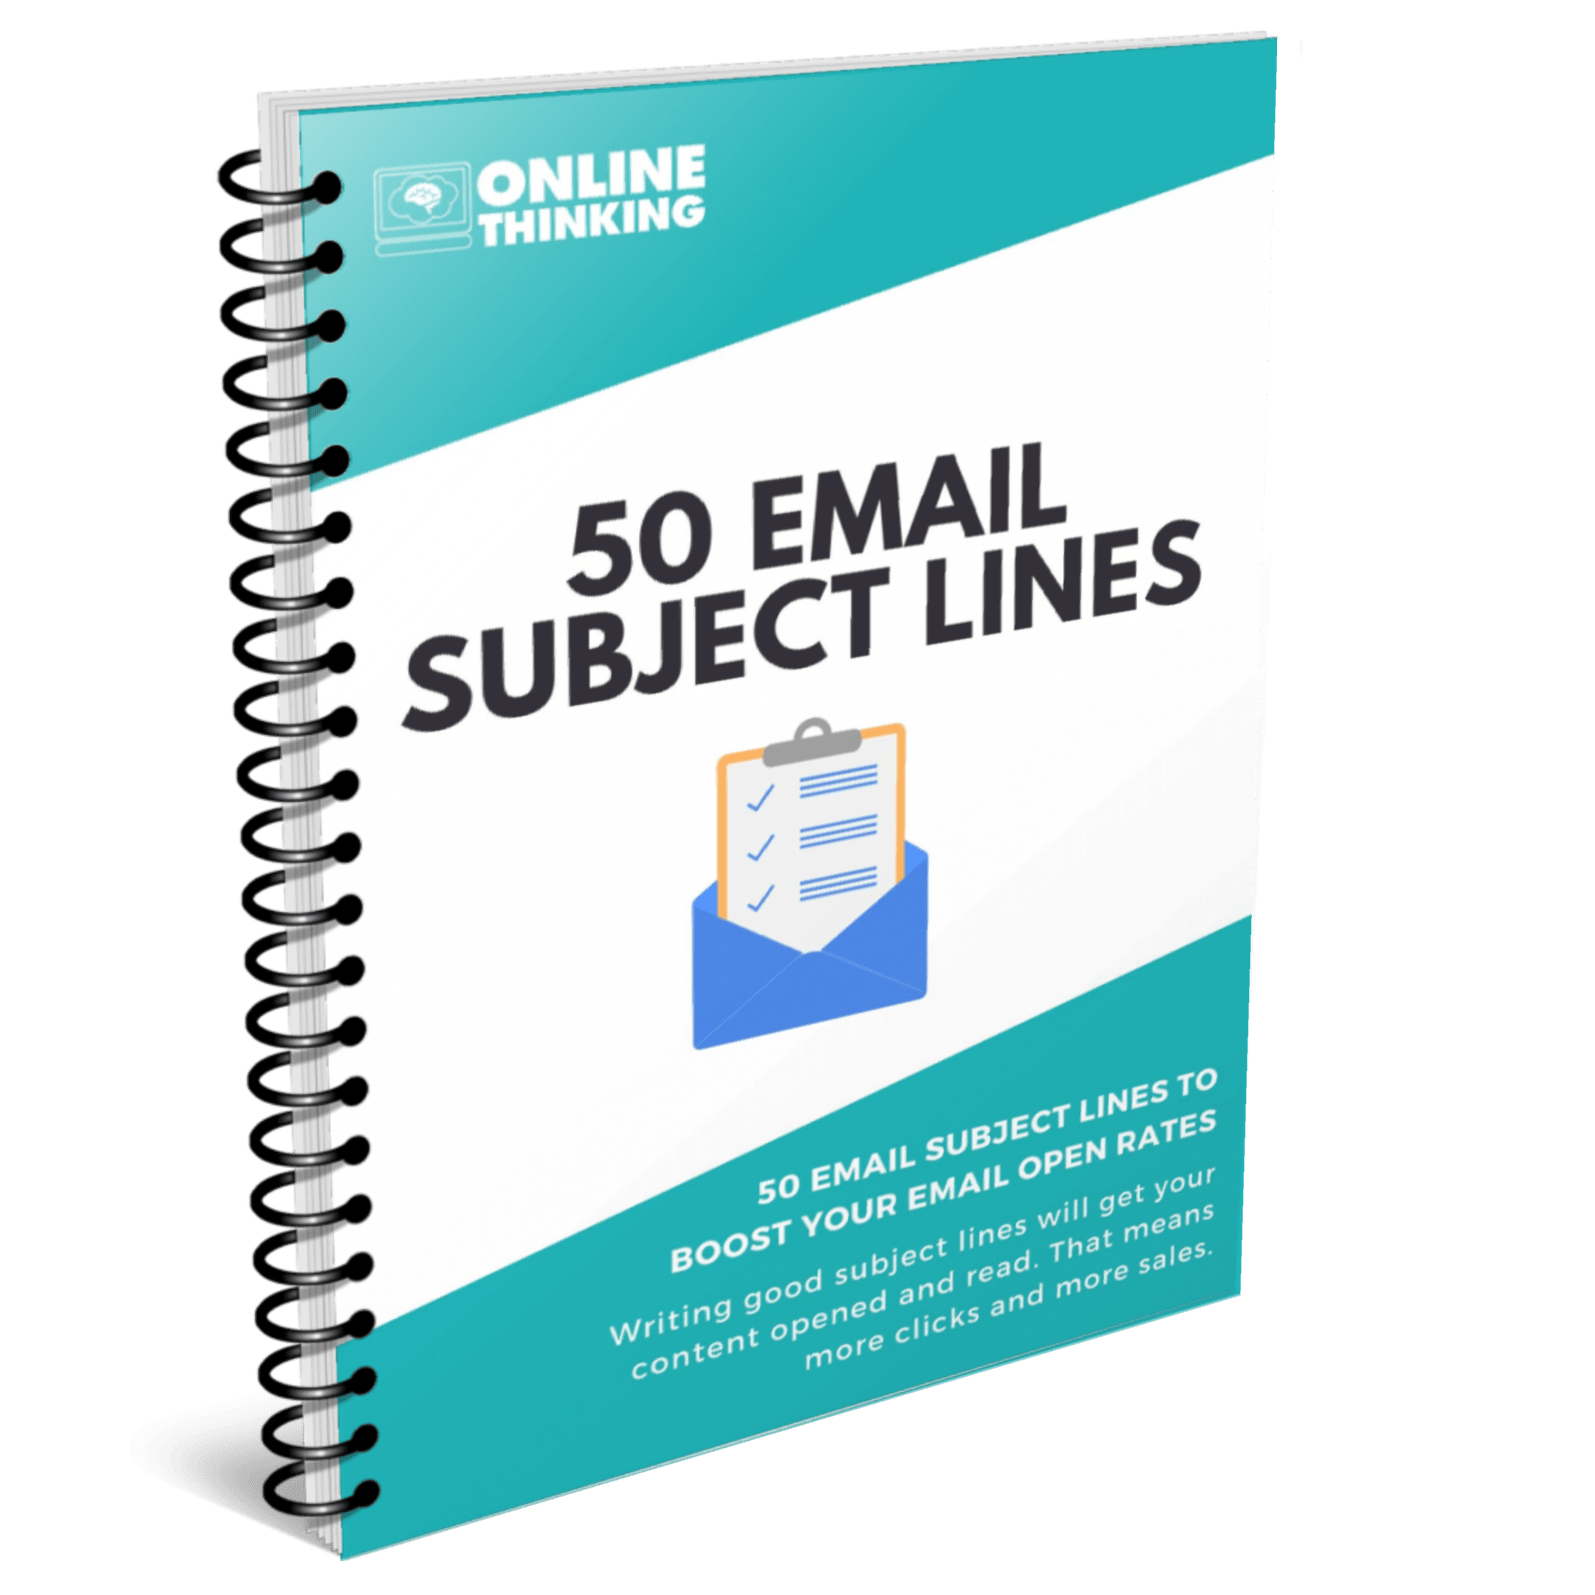 50 Email Subject Lines